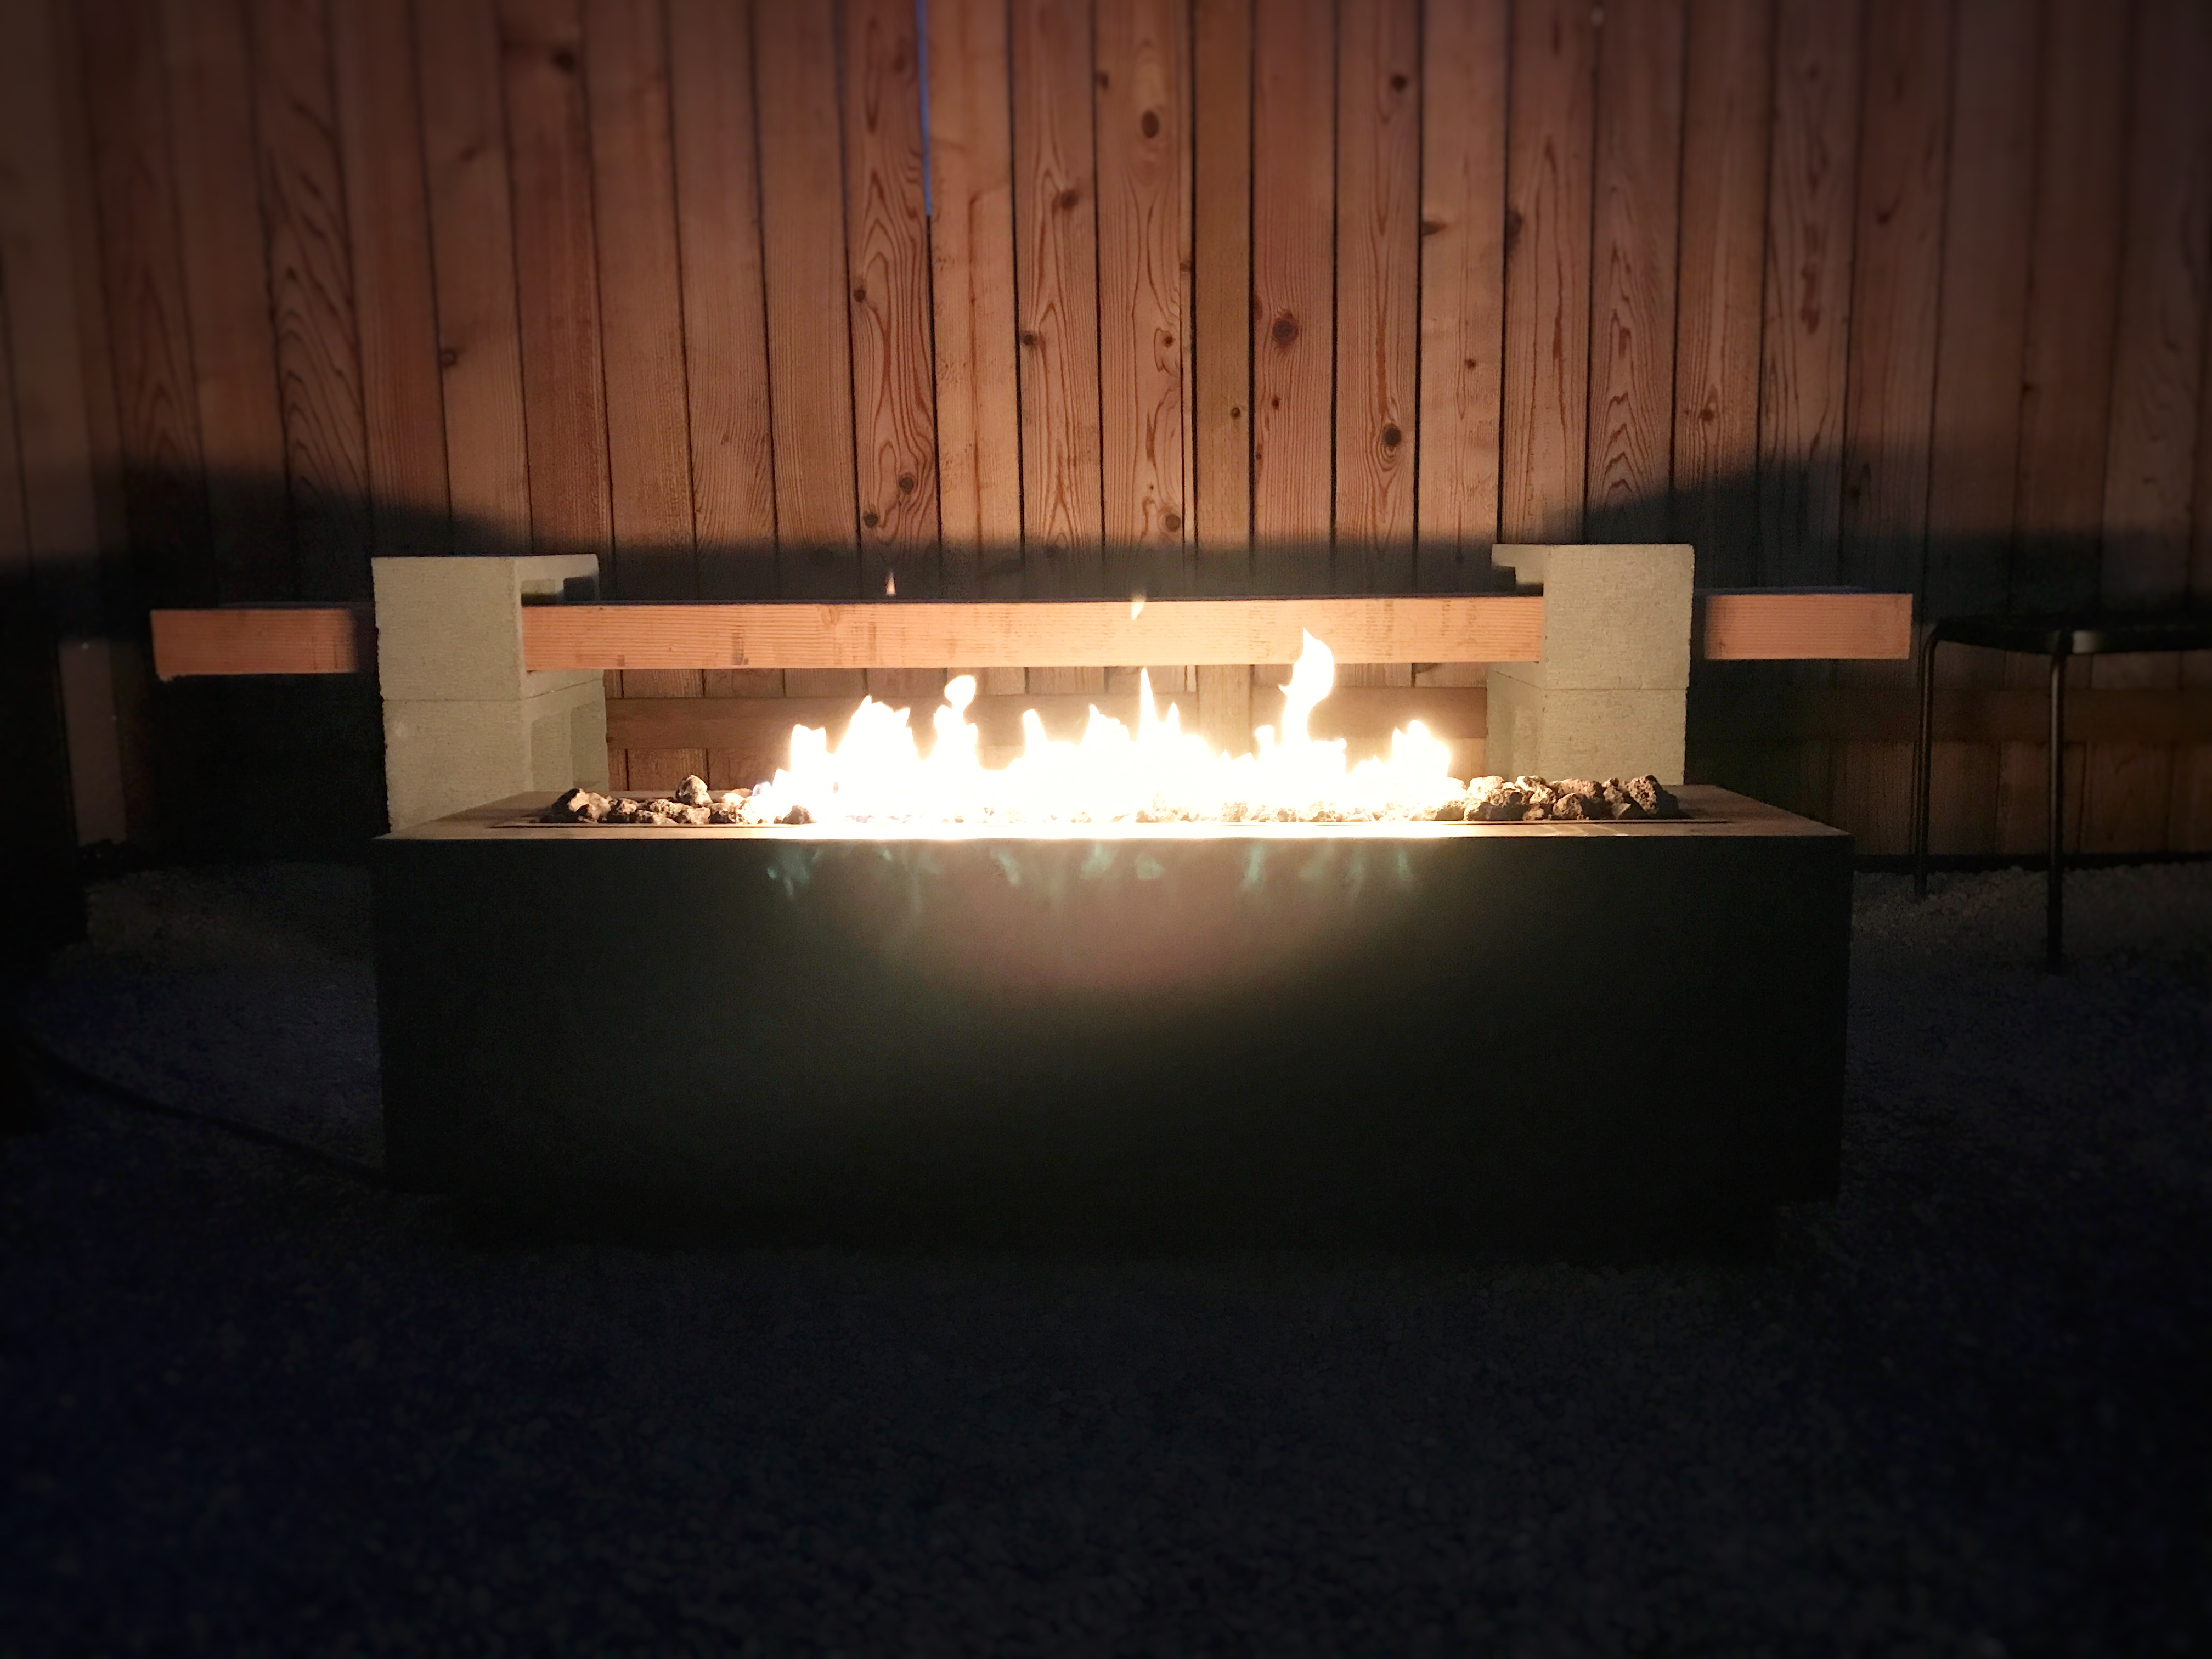 Product image of endless summer decorative 30 outdoor gas fire pit table with cover. SIMPLE DIY BACKYARD MAKEOVER (PEA GRAVEL PATIO & FIRE PIT